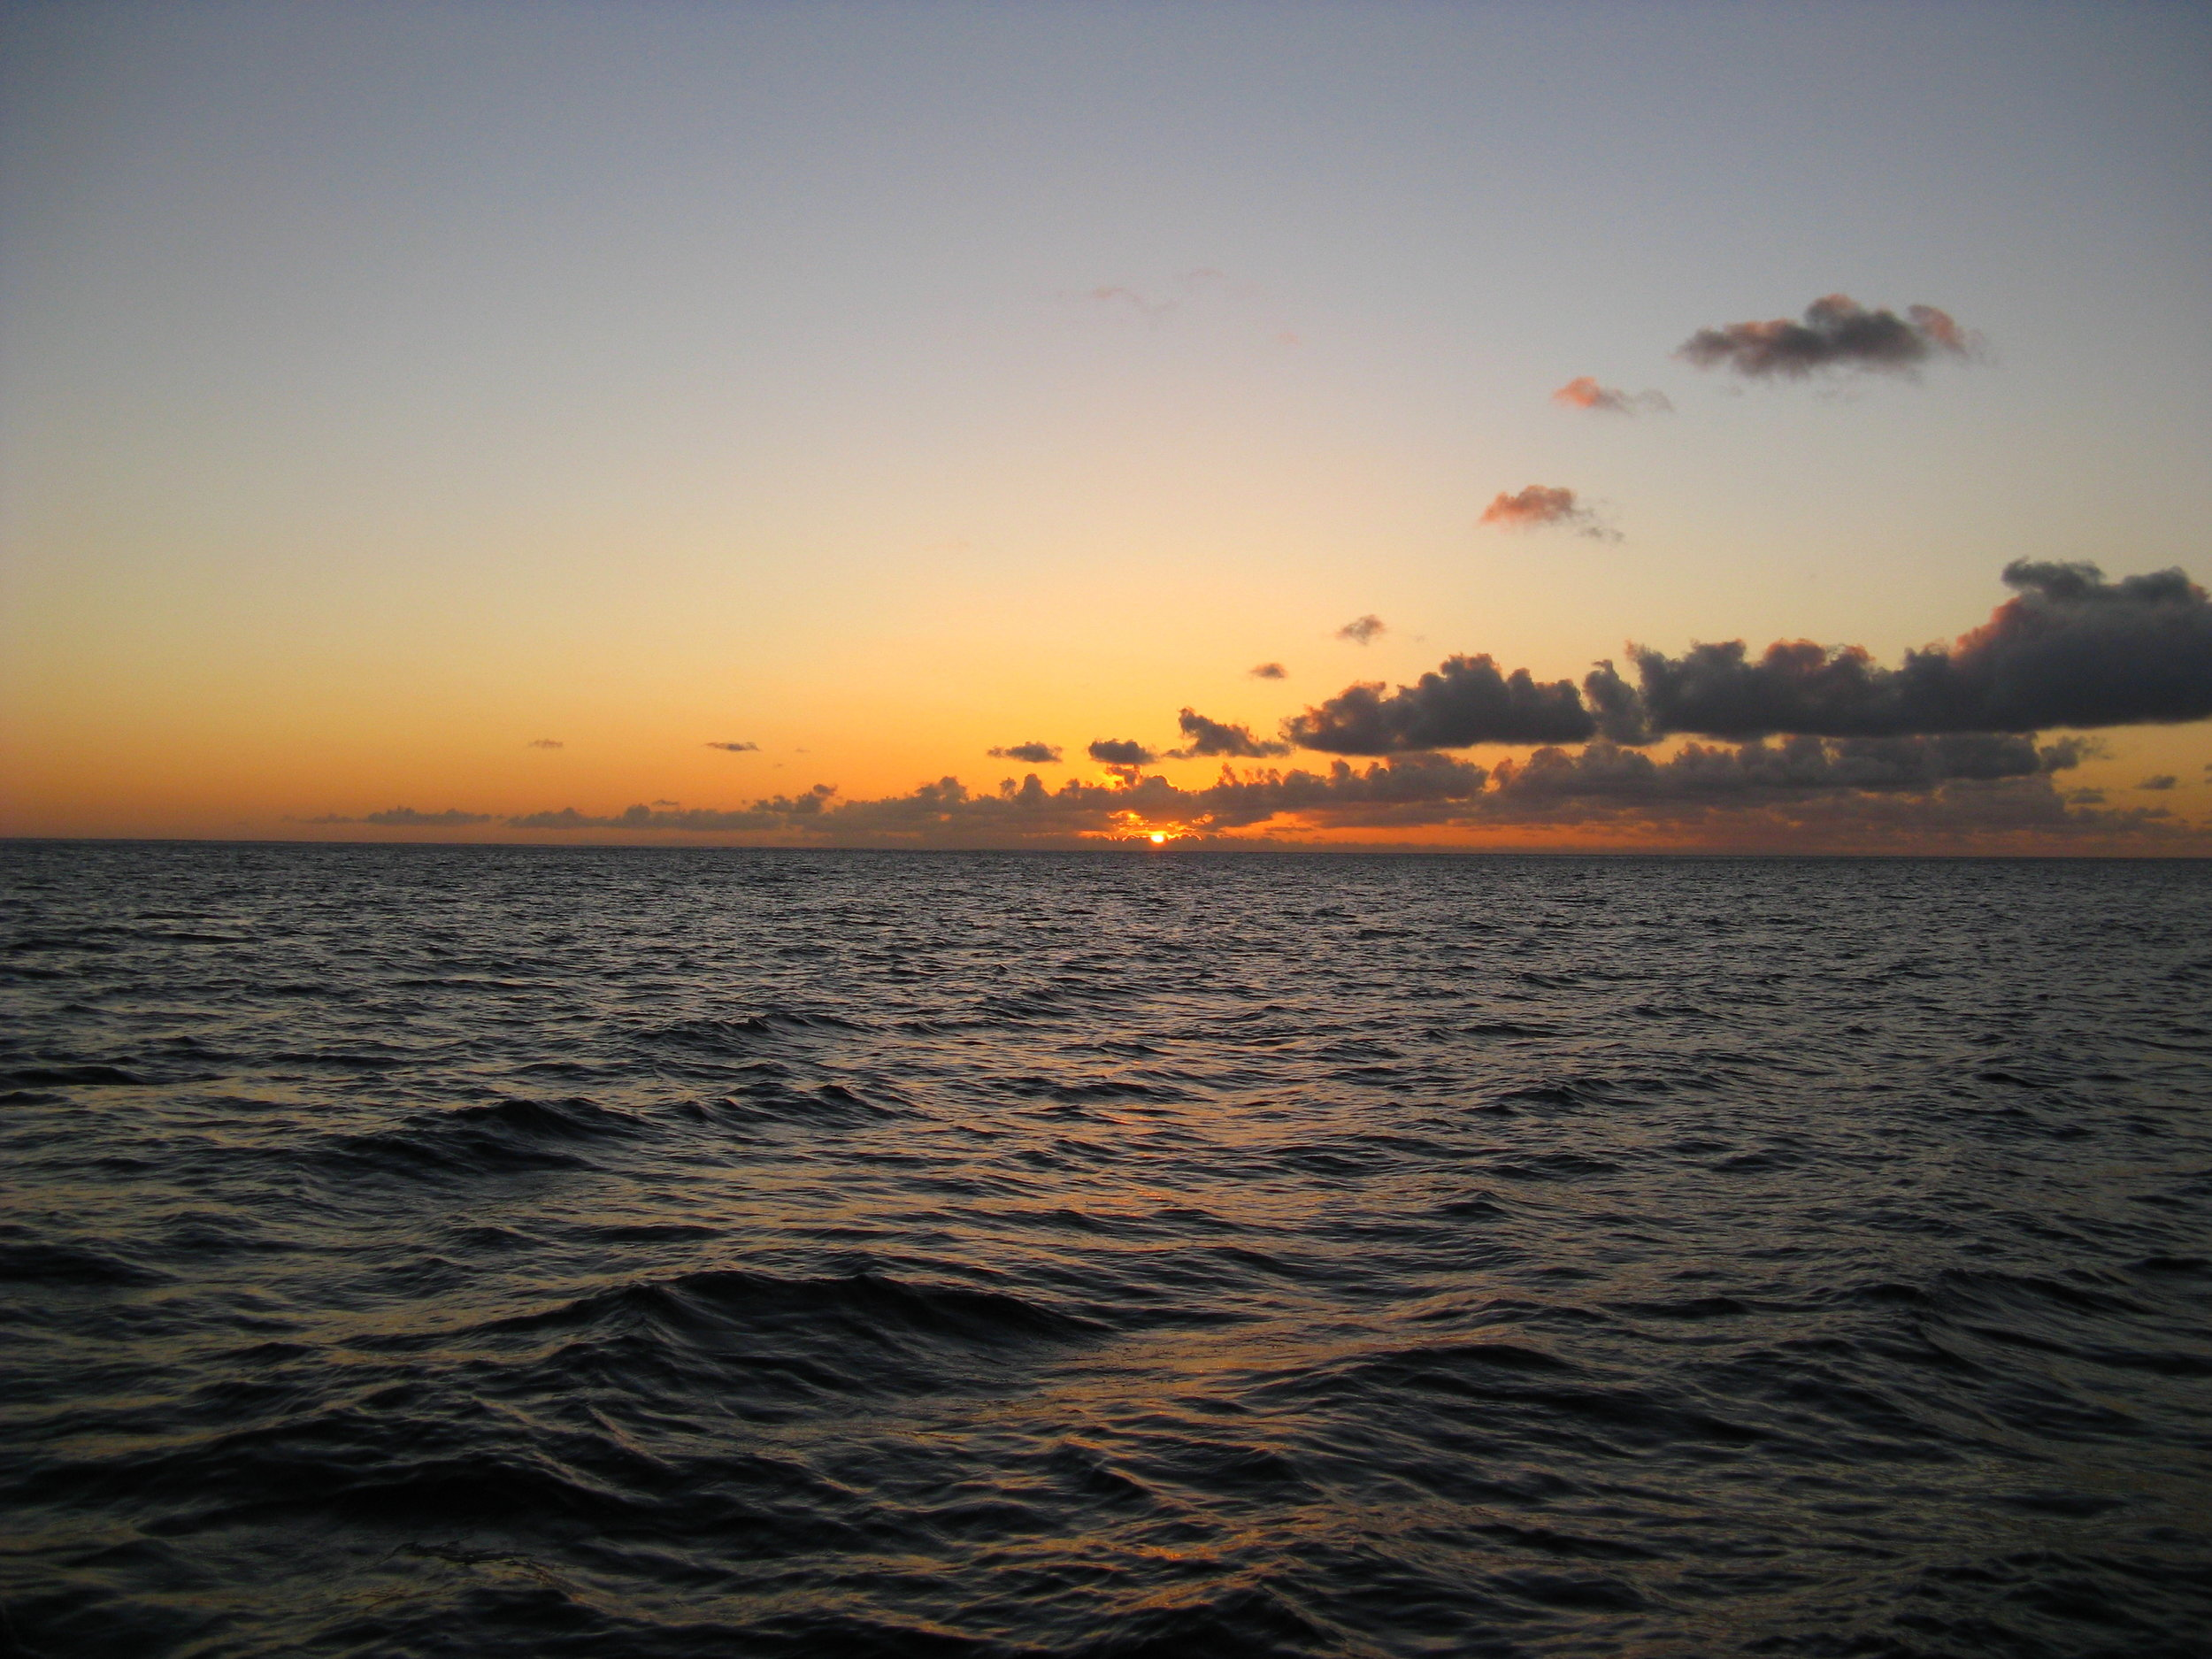 Sunset off the west coast of Oʻahu